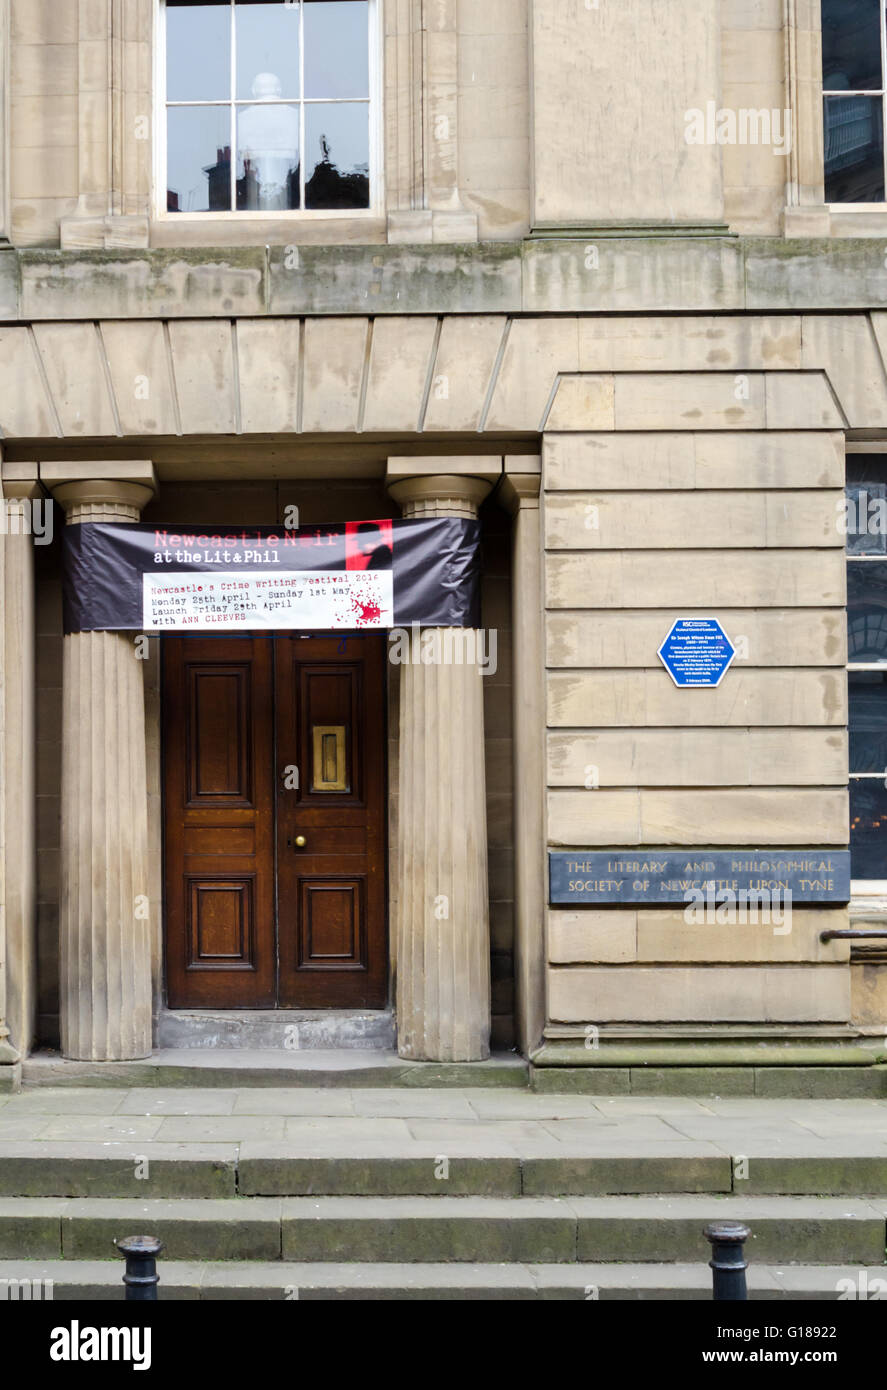 The Entrance of the Literary and Philosophical Society of Newcastle-Upon-Tyne (Grade II* Listed Building) - Stock Image